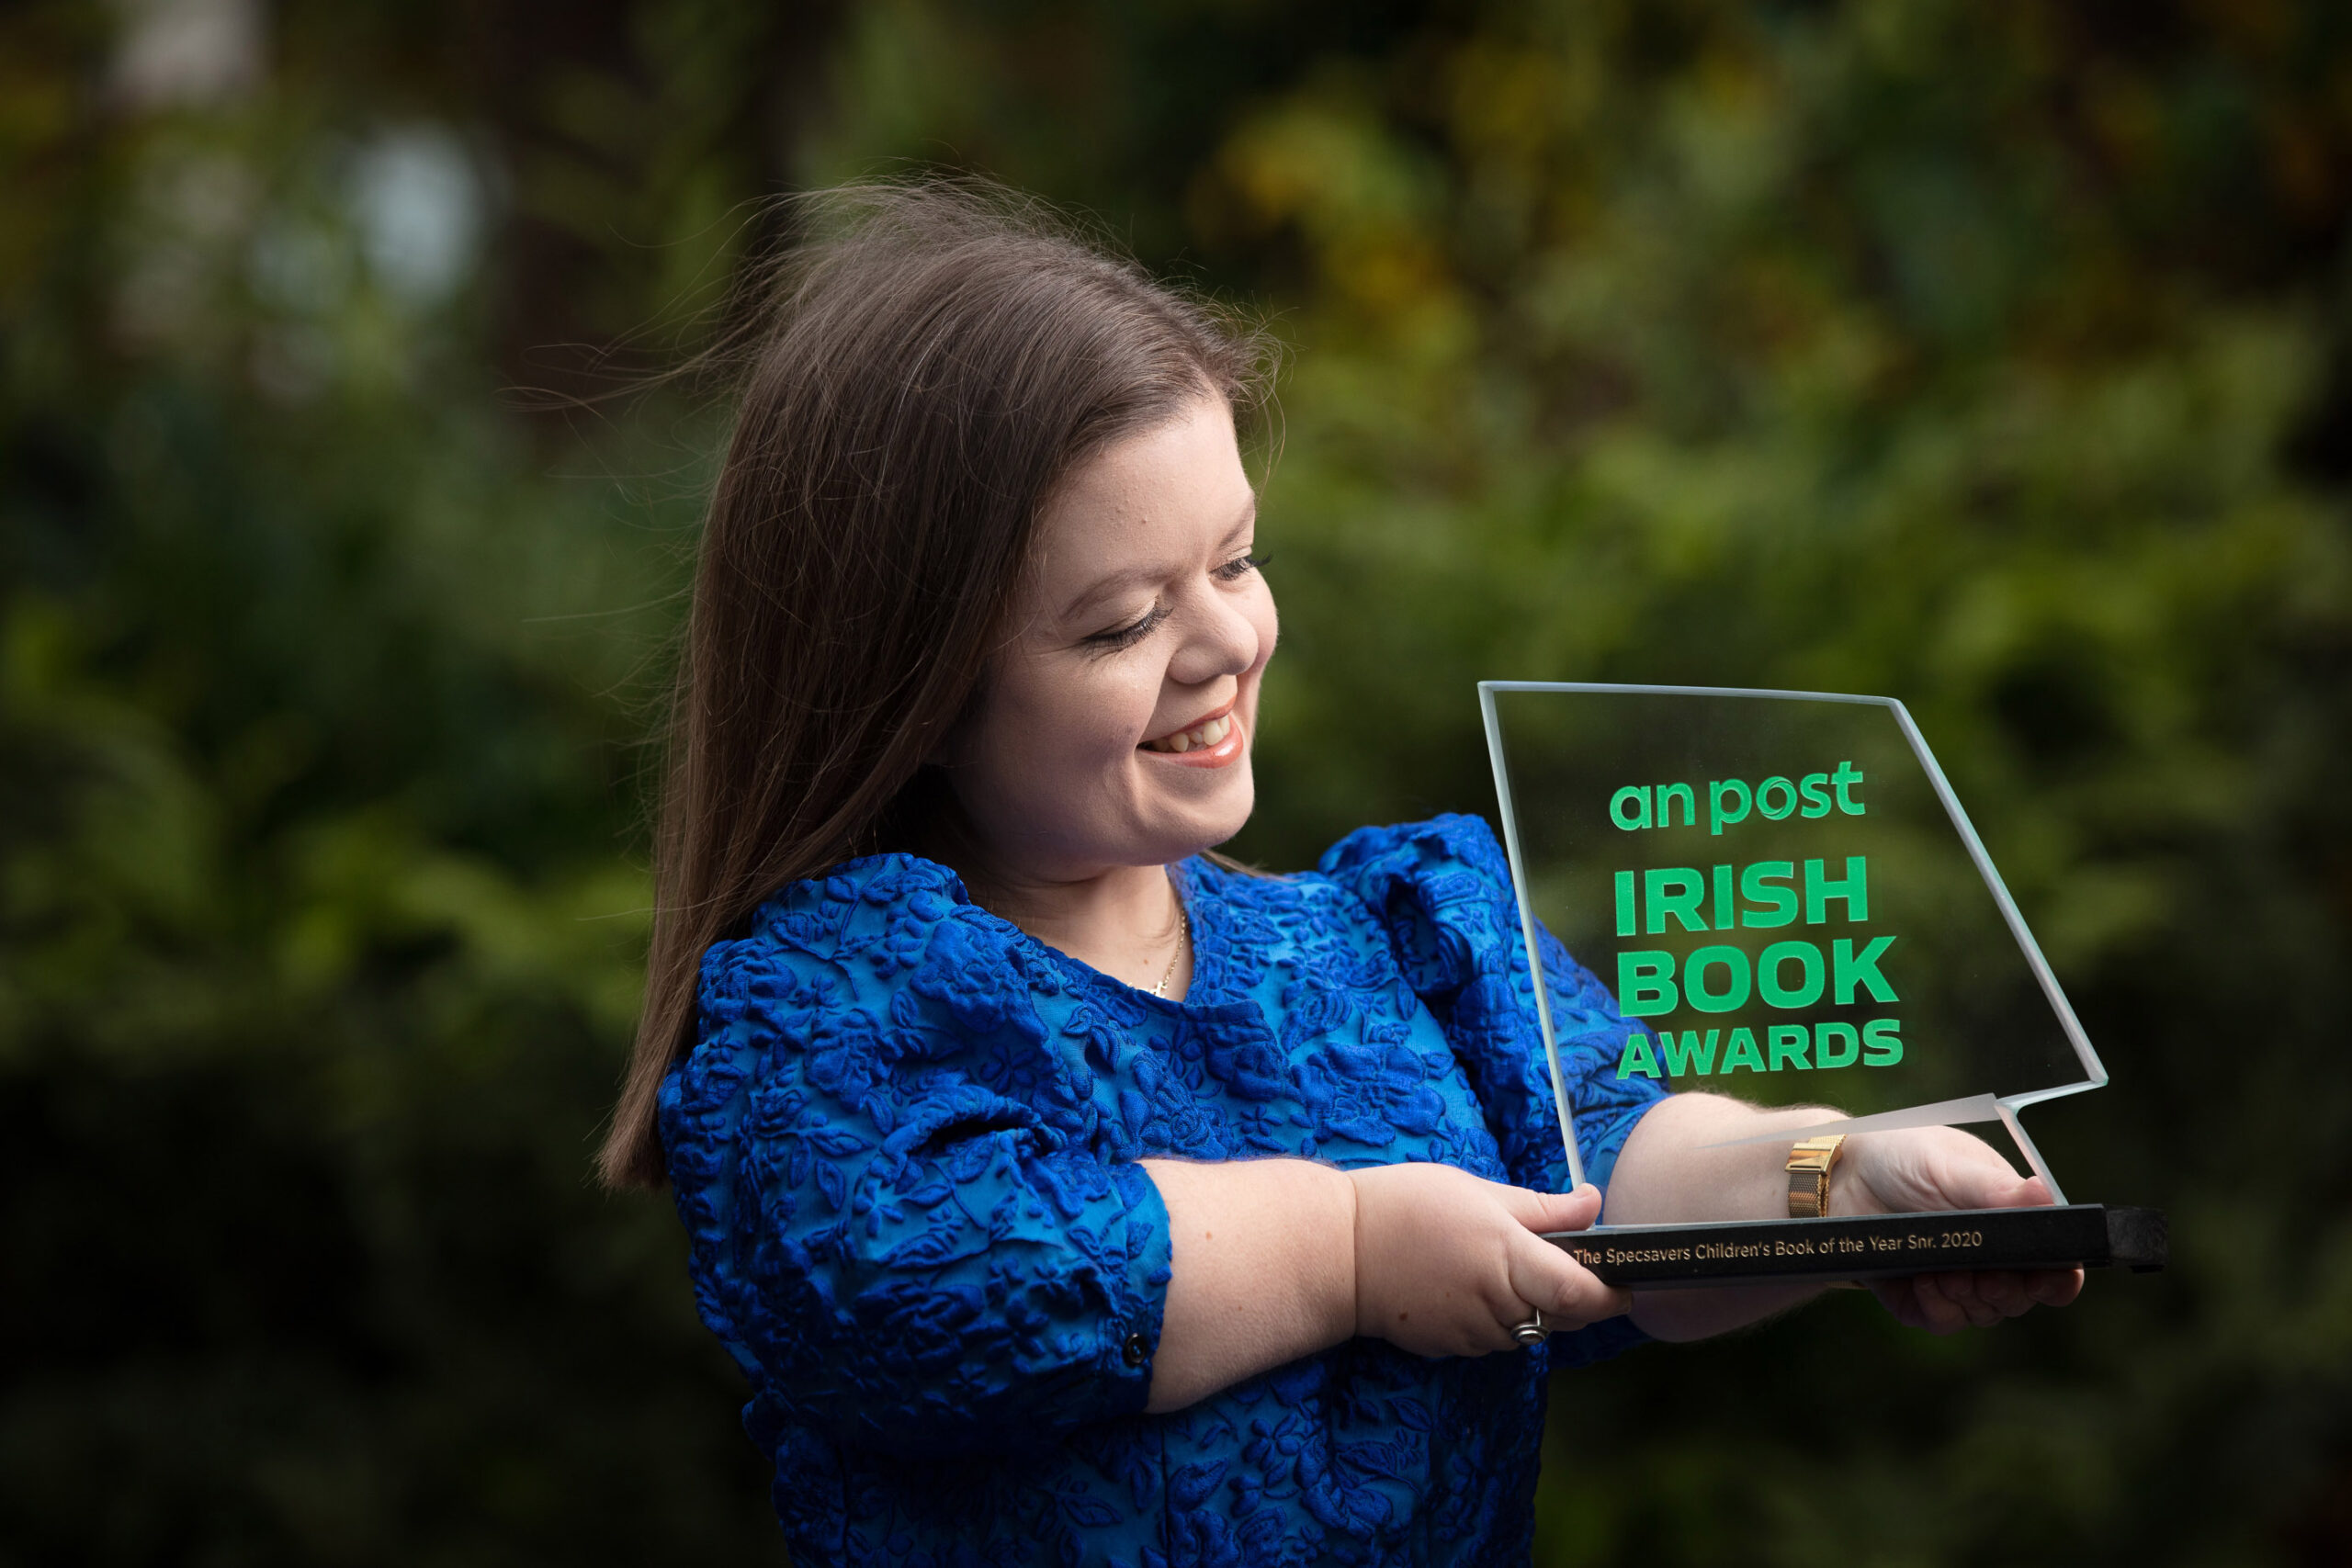 WINNERS ANNOUNCED FOR THE 2020 AN POST IRISH BOOK AWARDS!